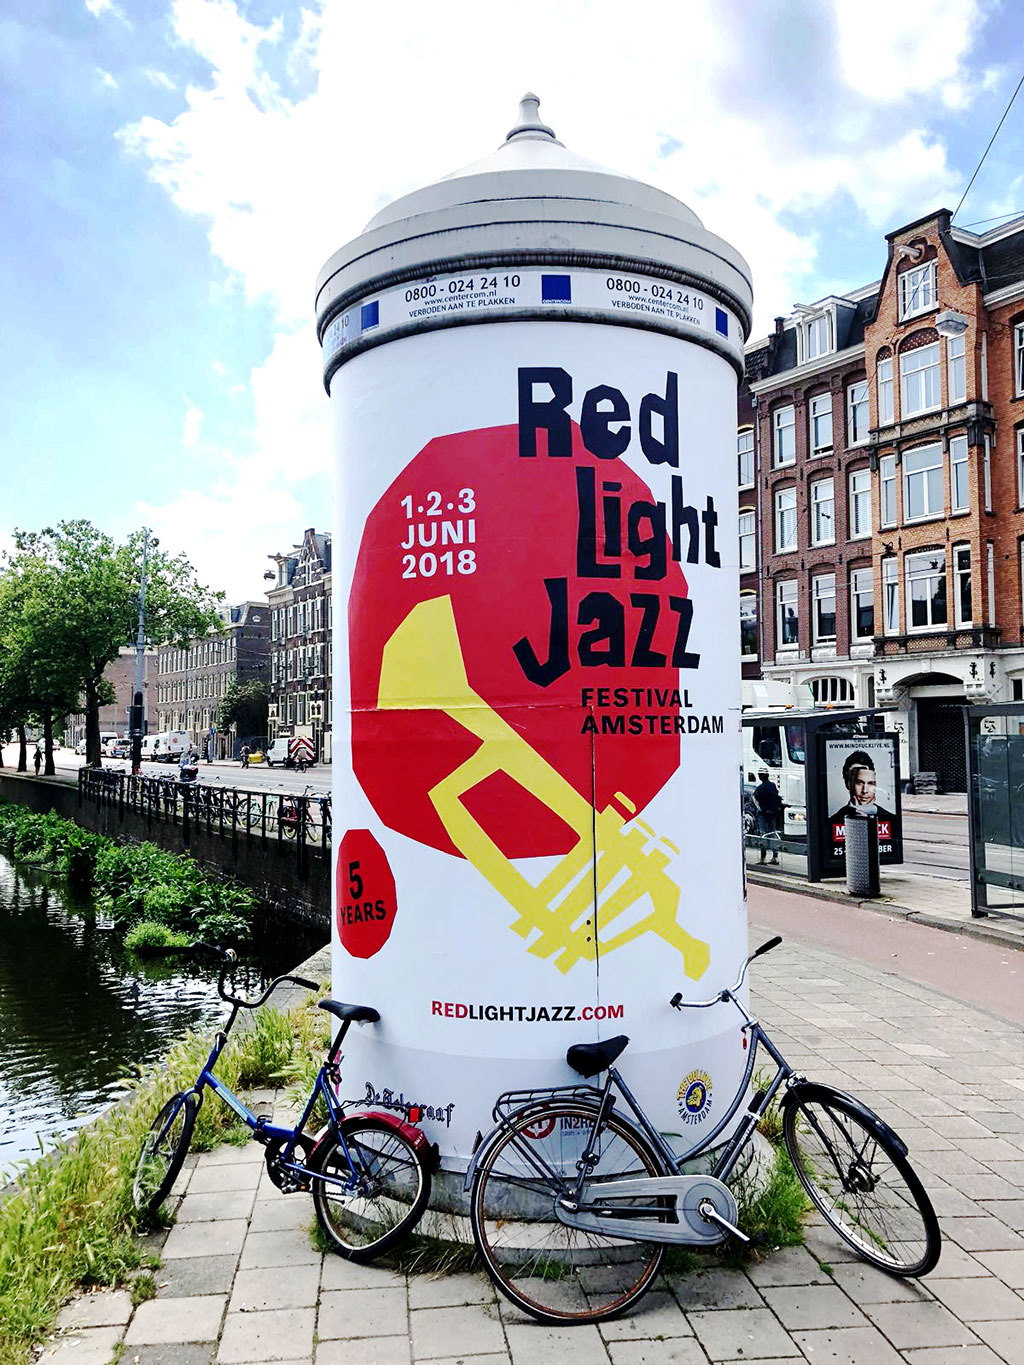 Identity & branding - Identity and branding for the jazz festival in the red light district of Amsterdam. This fifth anniversary of Red Light Jazz focusses on the trumpet and legendary jazz trumpet player Chet Baker who died 30 years ago in Amsterdam.